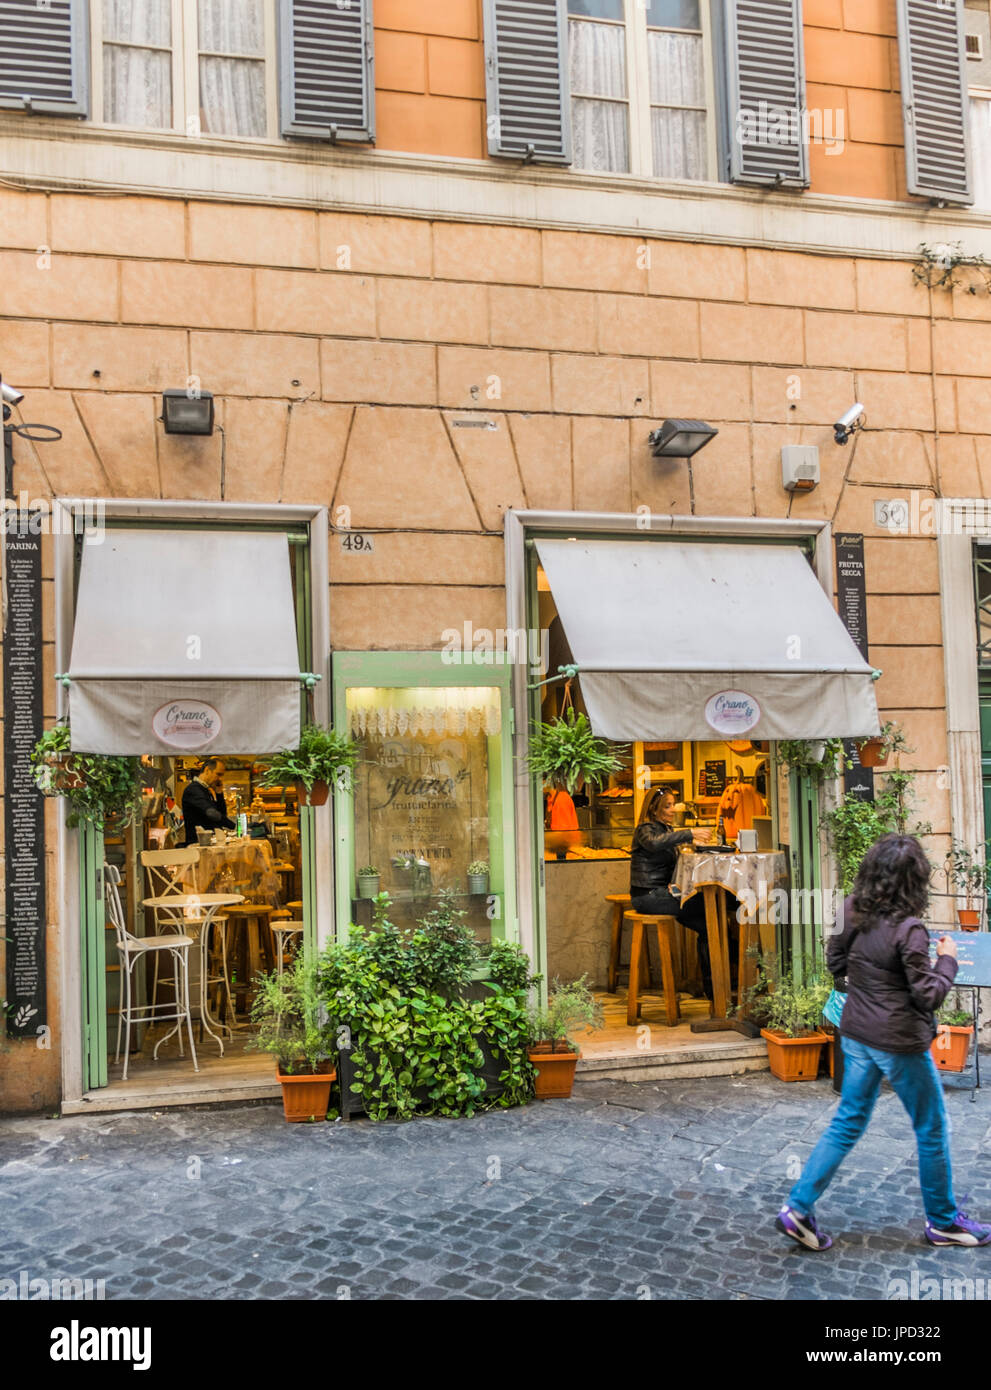 street scene in front of grano frutta e farina bakery and bistro/coffehouse, via della croce, 49/A , roma, lazio, Stock Photo